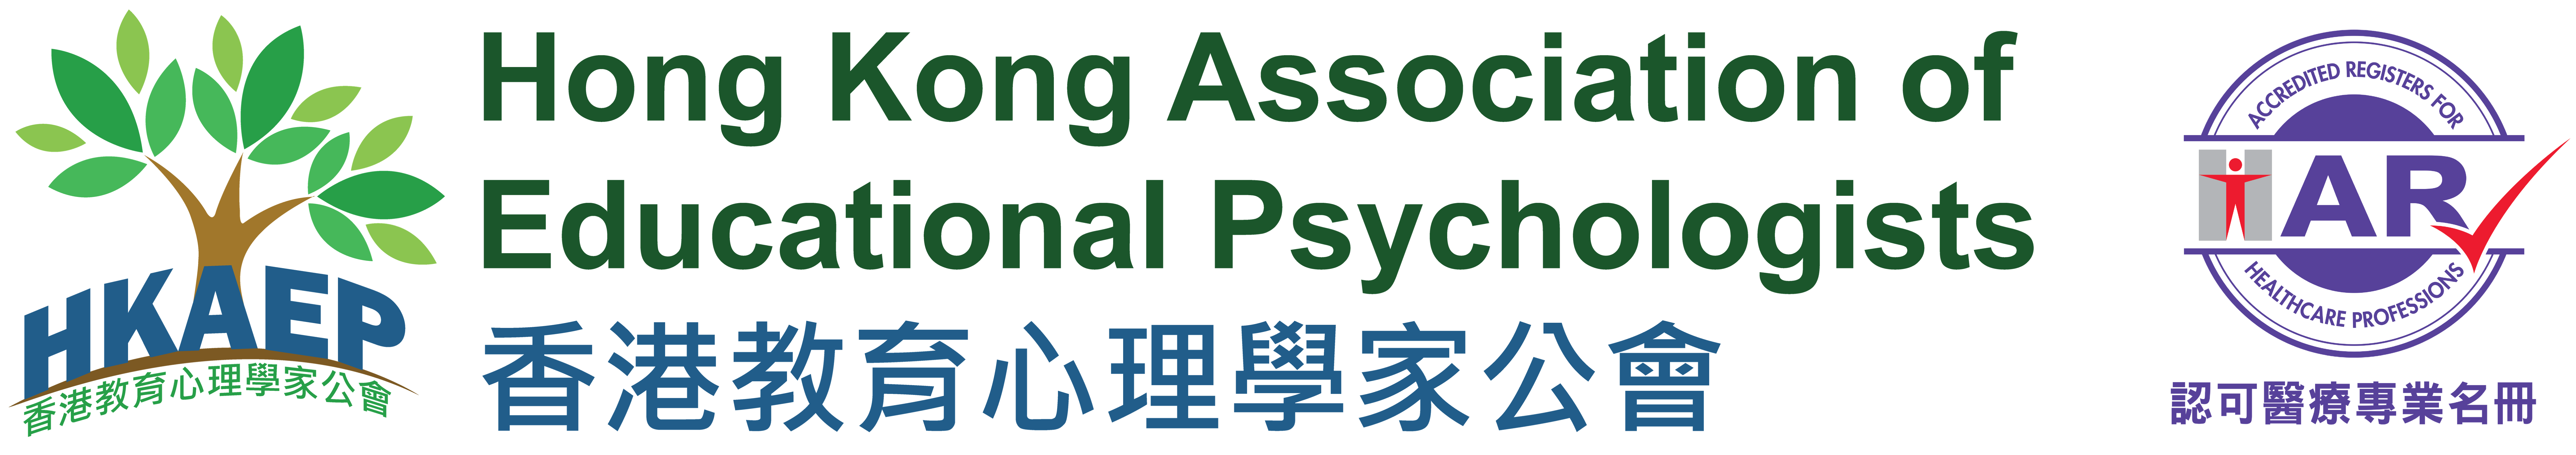 Hong Kong Association of Educational Psychologists